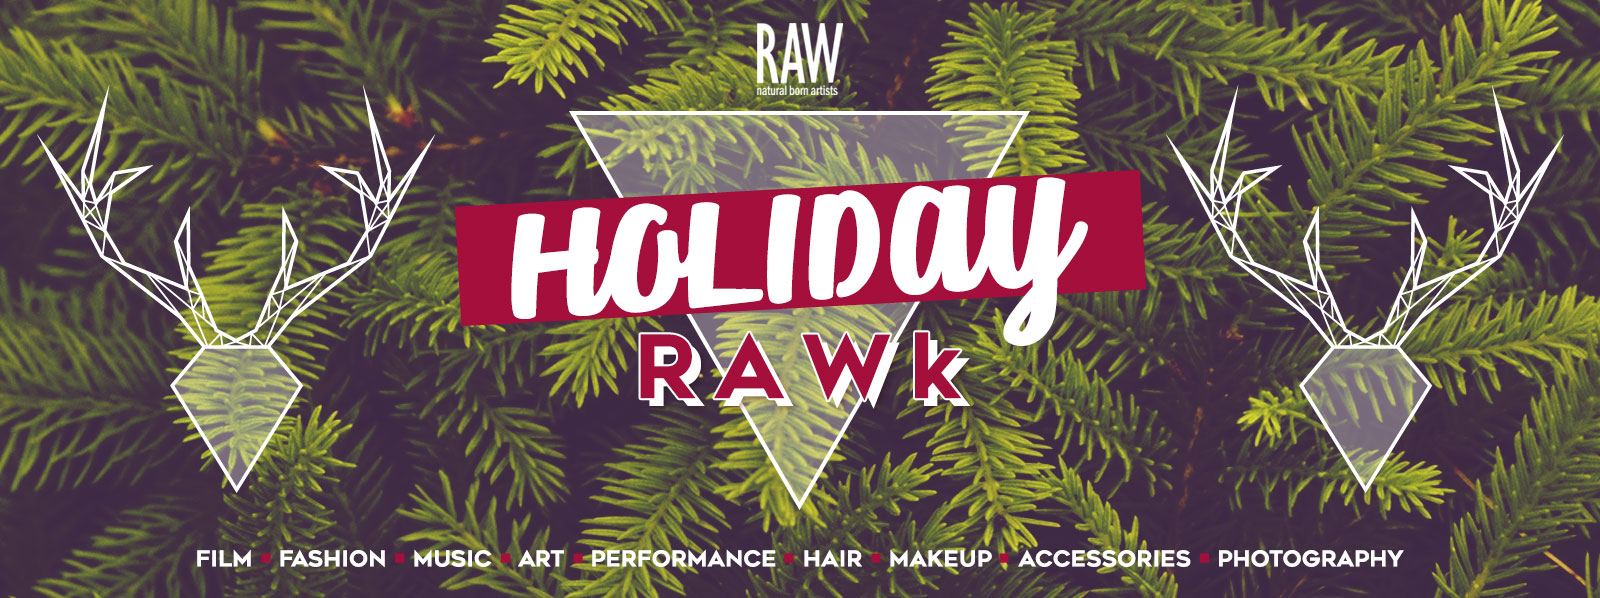 raw-toronto-event-large